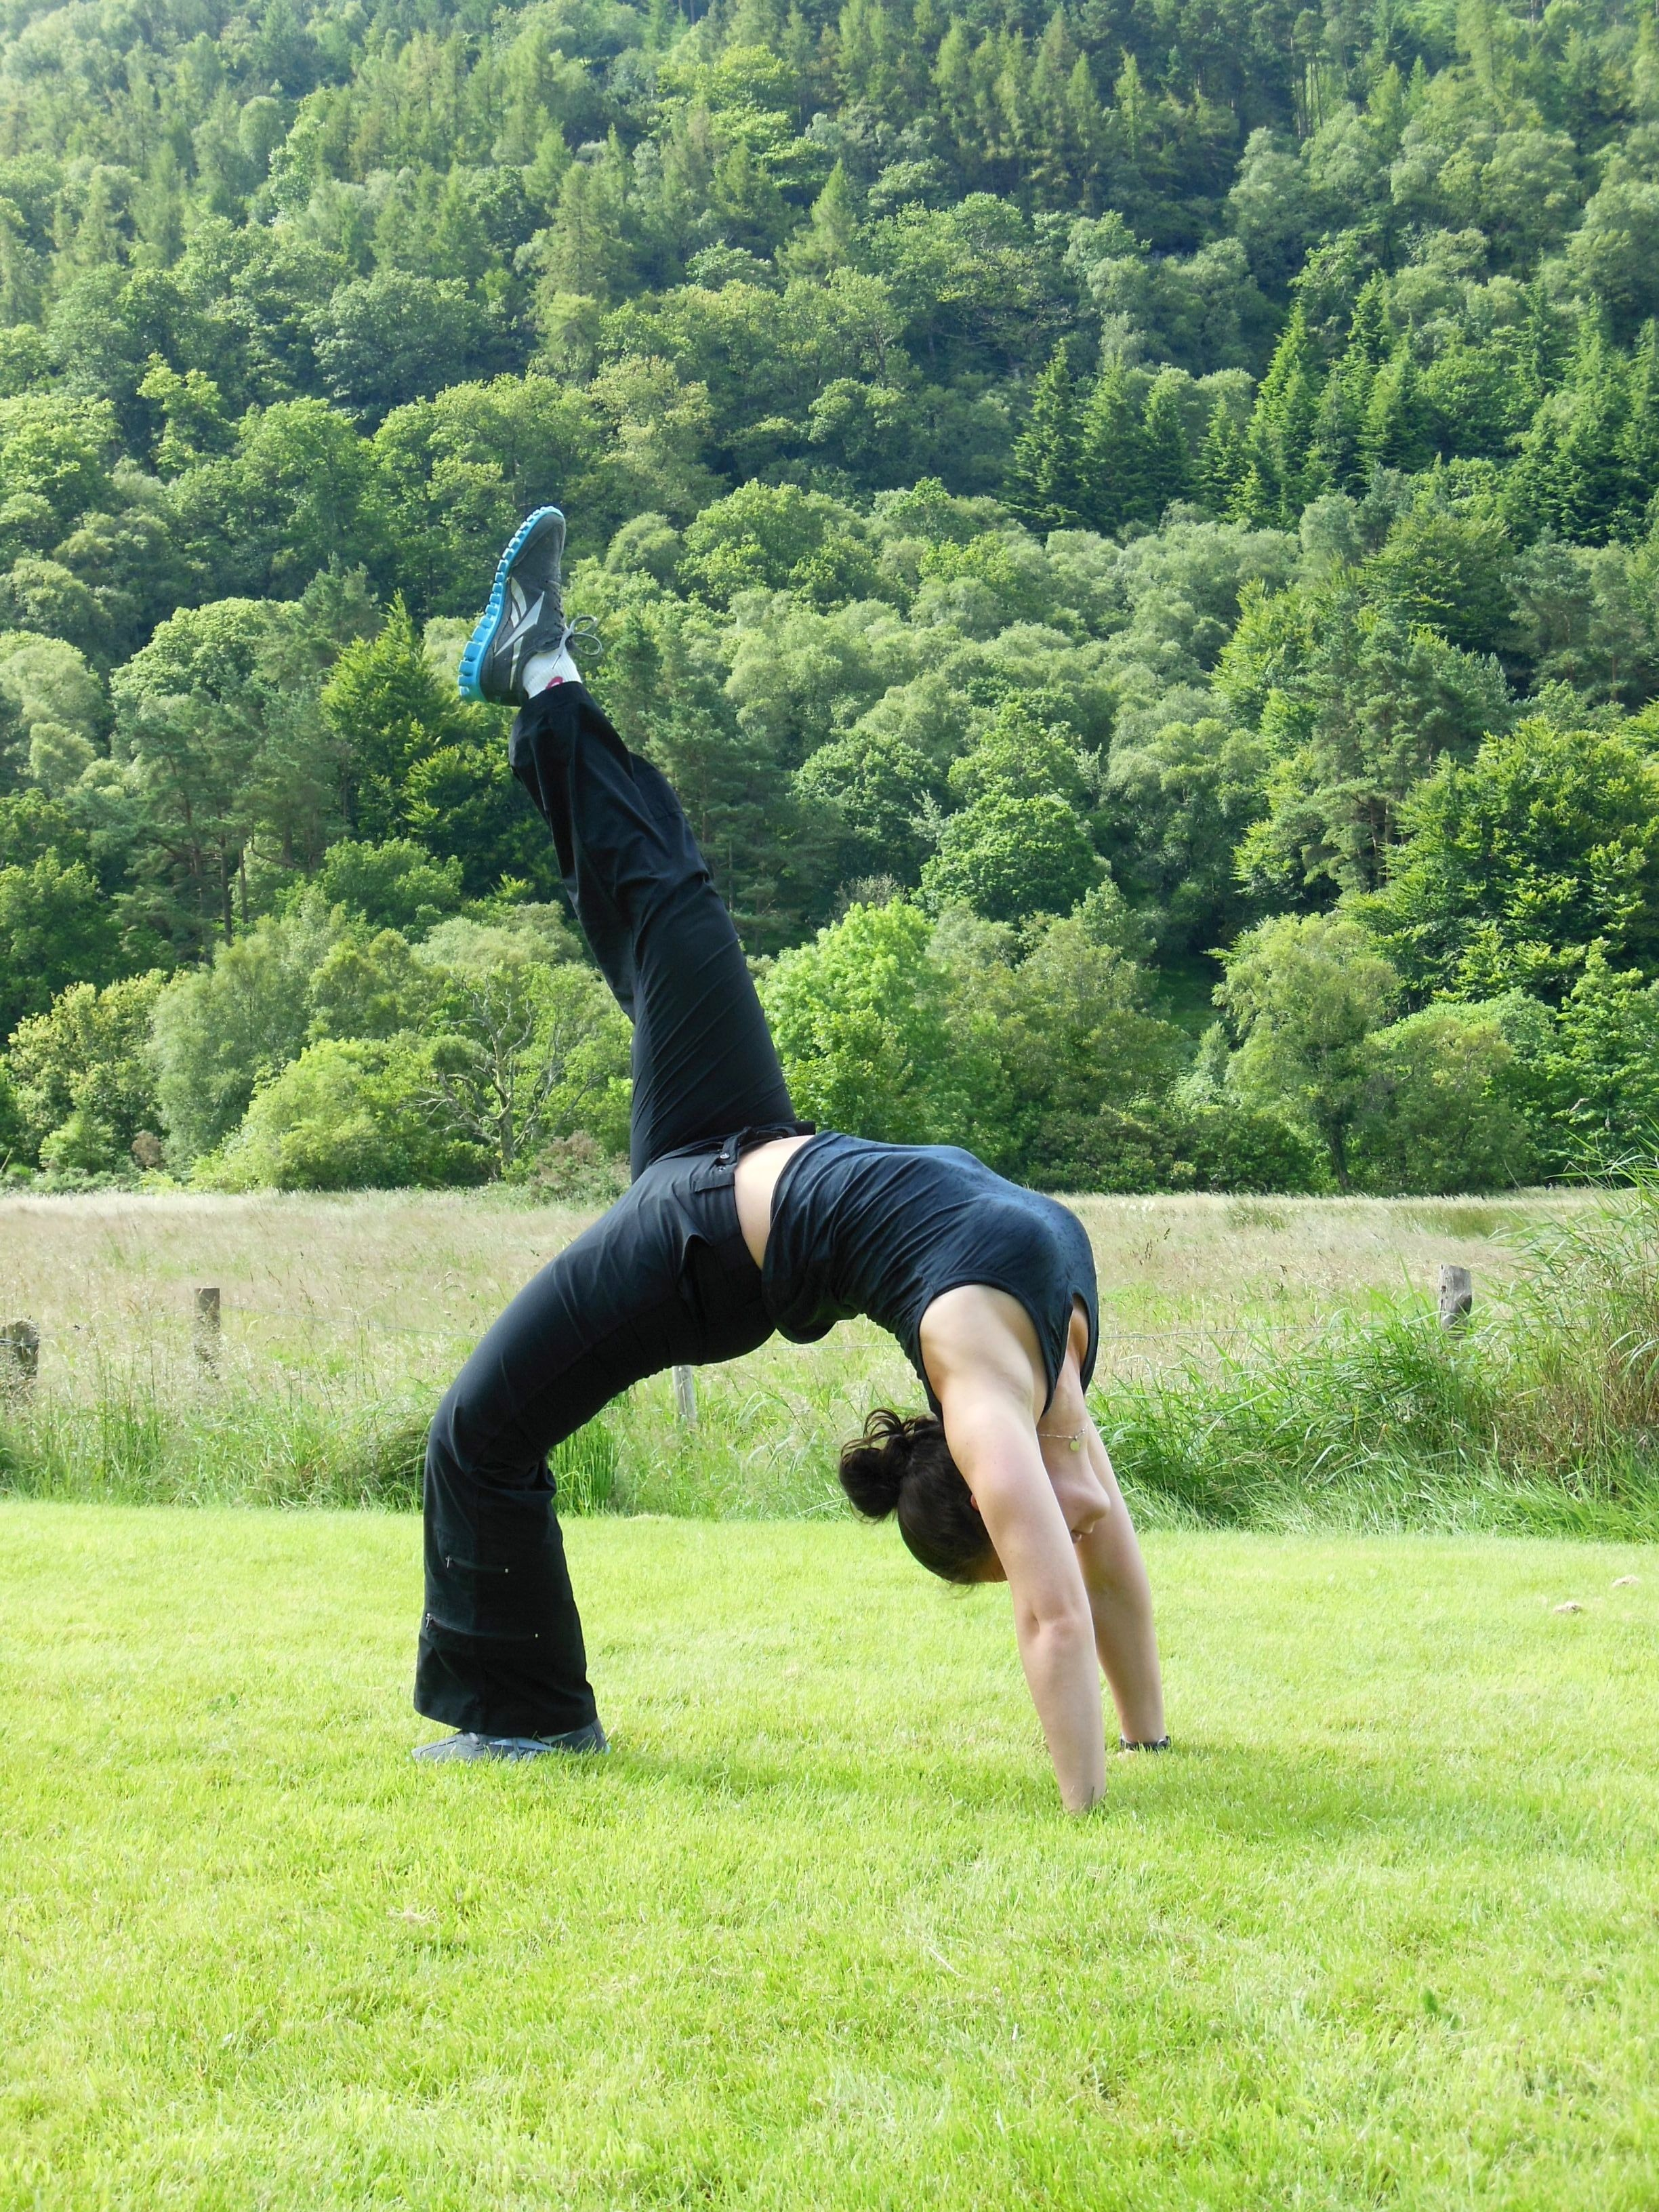 Me Doing Yoga In Ireland I Am Wearing Anatomie Travel Clothing For